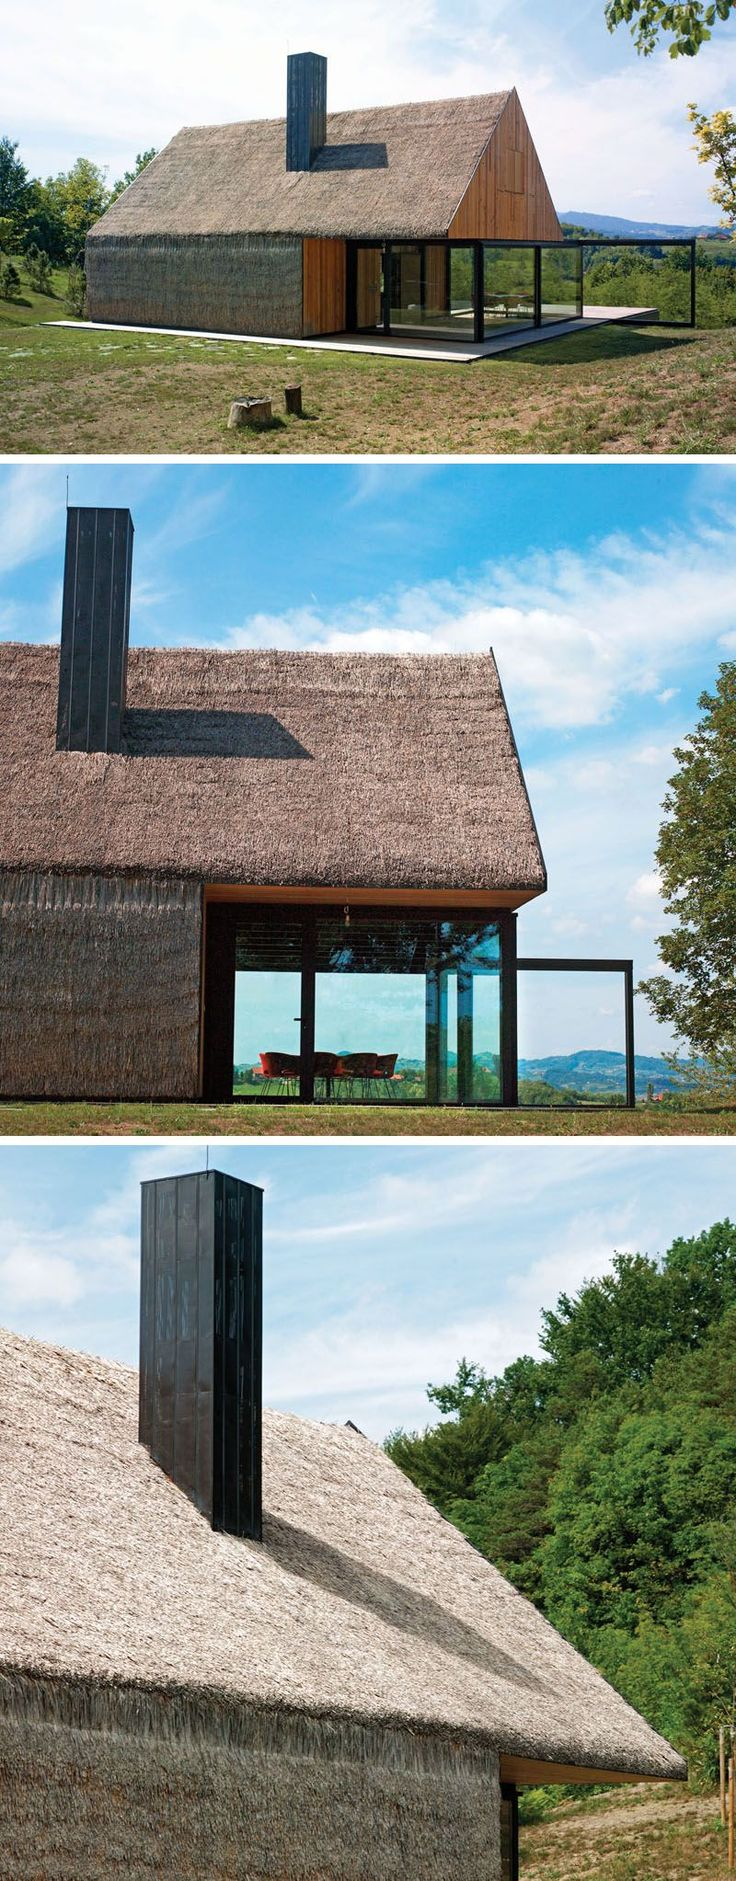 12 Examples Of Modern Houses And Buildings That Have A Thatched Roof   A dilapidated farmers cottage was restored and updated with modern timber cladding, while the thatch walls and roof pay tribute to the original structure and historical site.